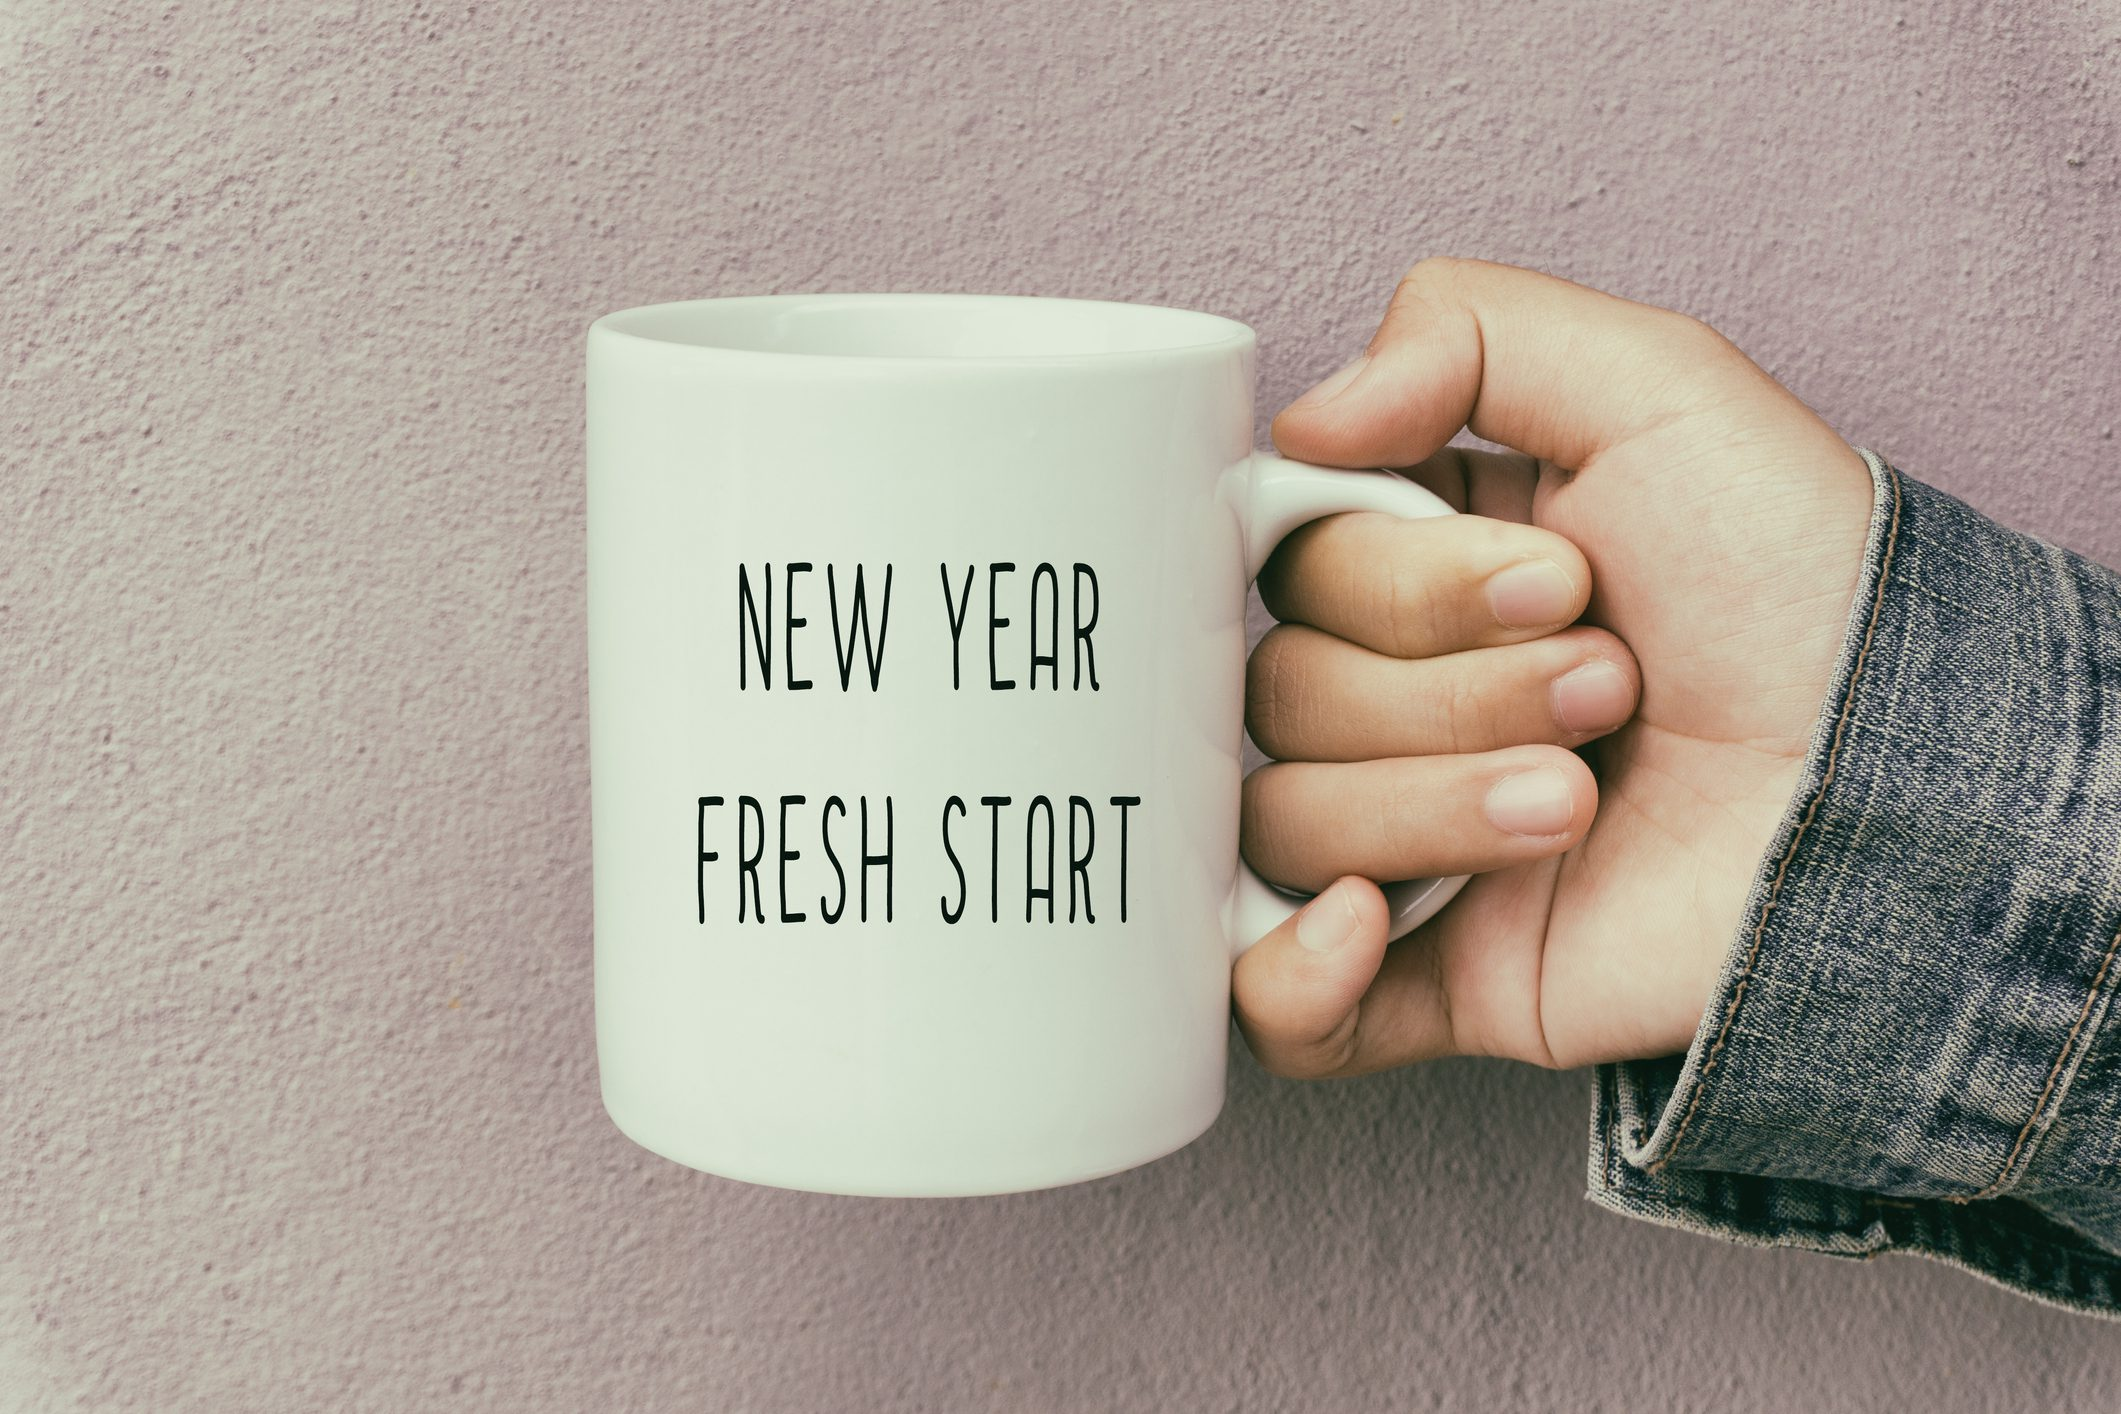 20 New Year's Resolutions Anyone Can Accomplish